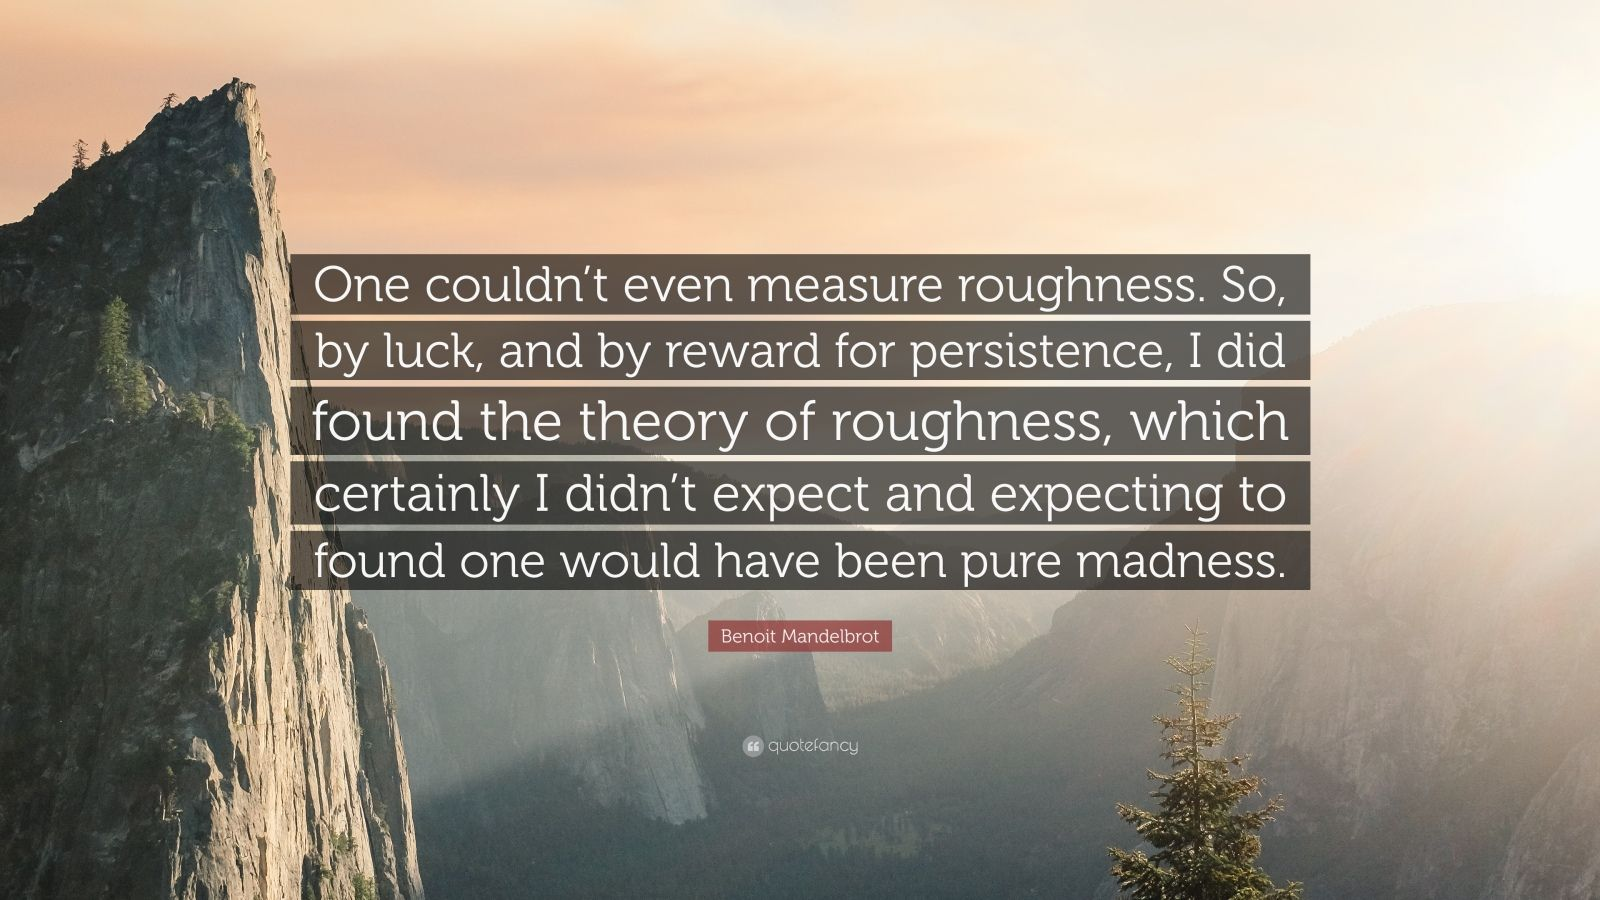 """Benoit Mandelbrot Quote: """"One couldn't even measure roughness. So, by luck, and by reward for persistence, I did found the theory of roughness, which certainly I didn't expect and expecting to found one would have been pure madness."""""""